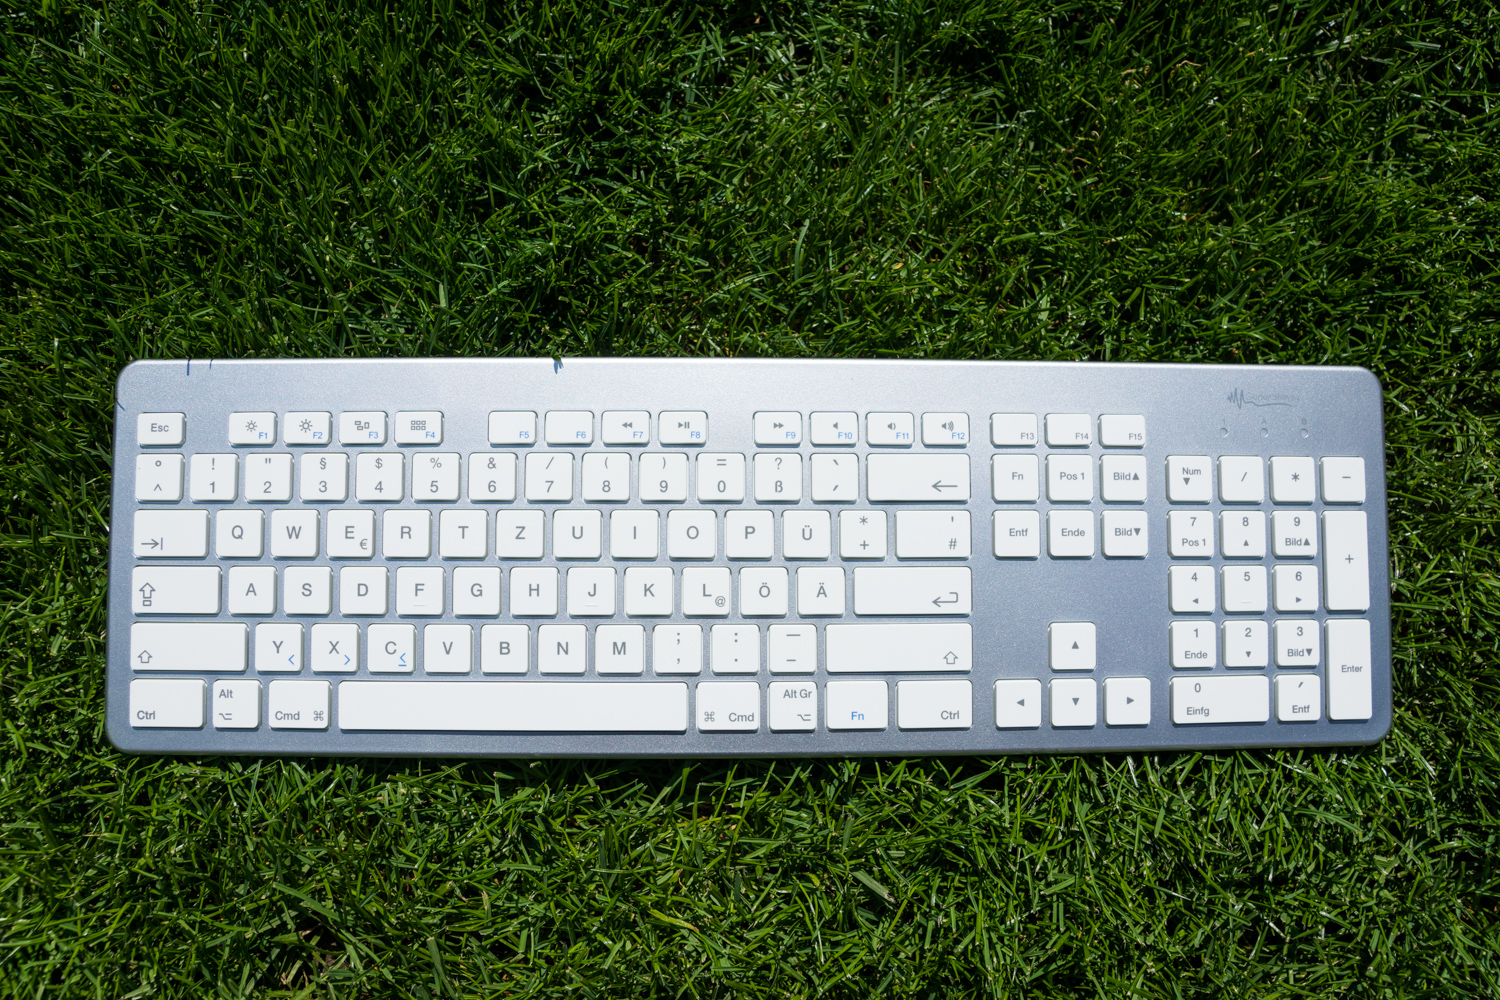 GeneralKeys: Günstige Bluetooth-Tastatur mit Aluminium Optik im Test